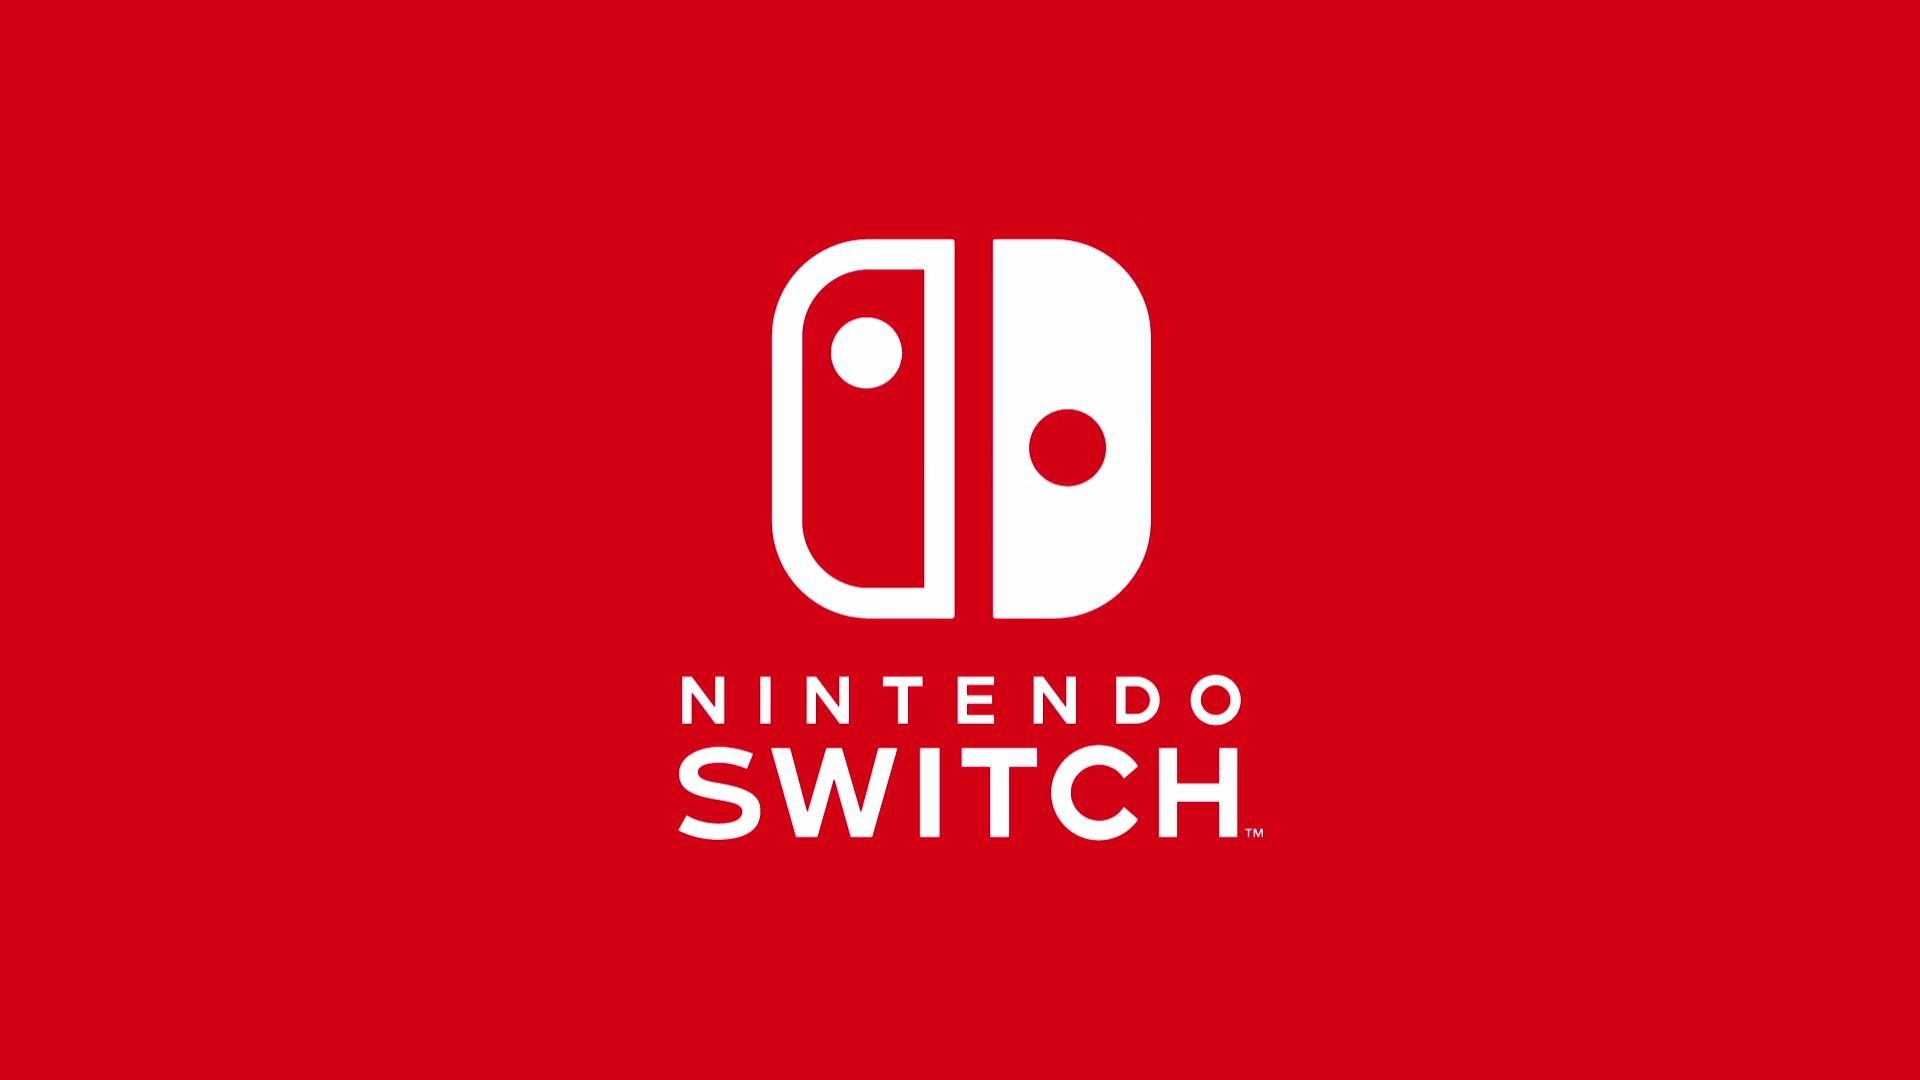 1920x1080 Nintendo Switch Logo